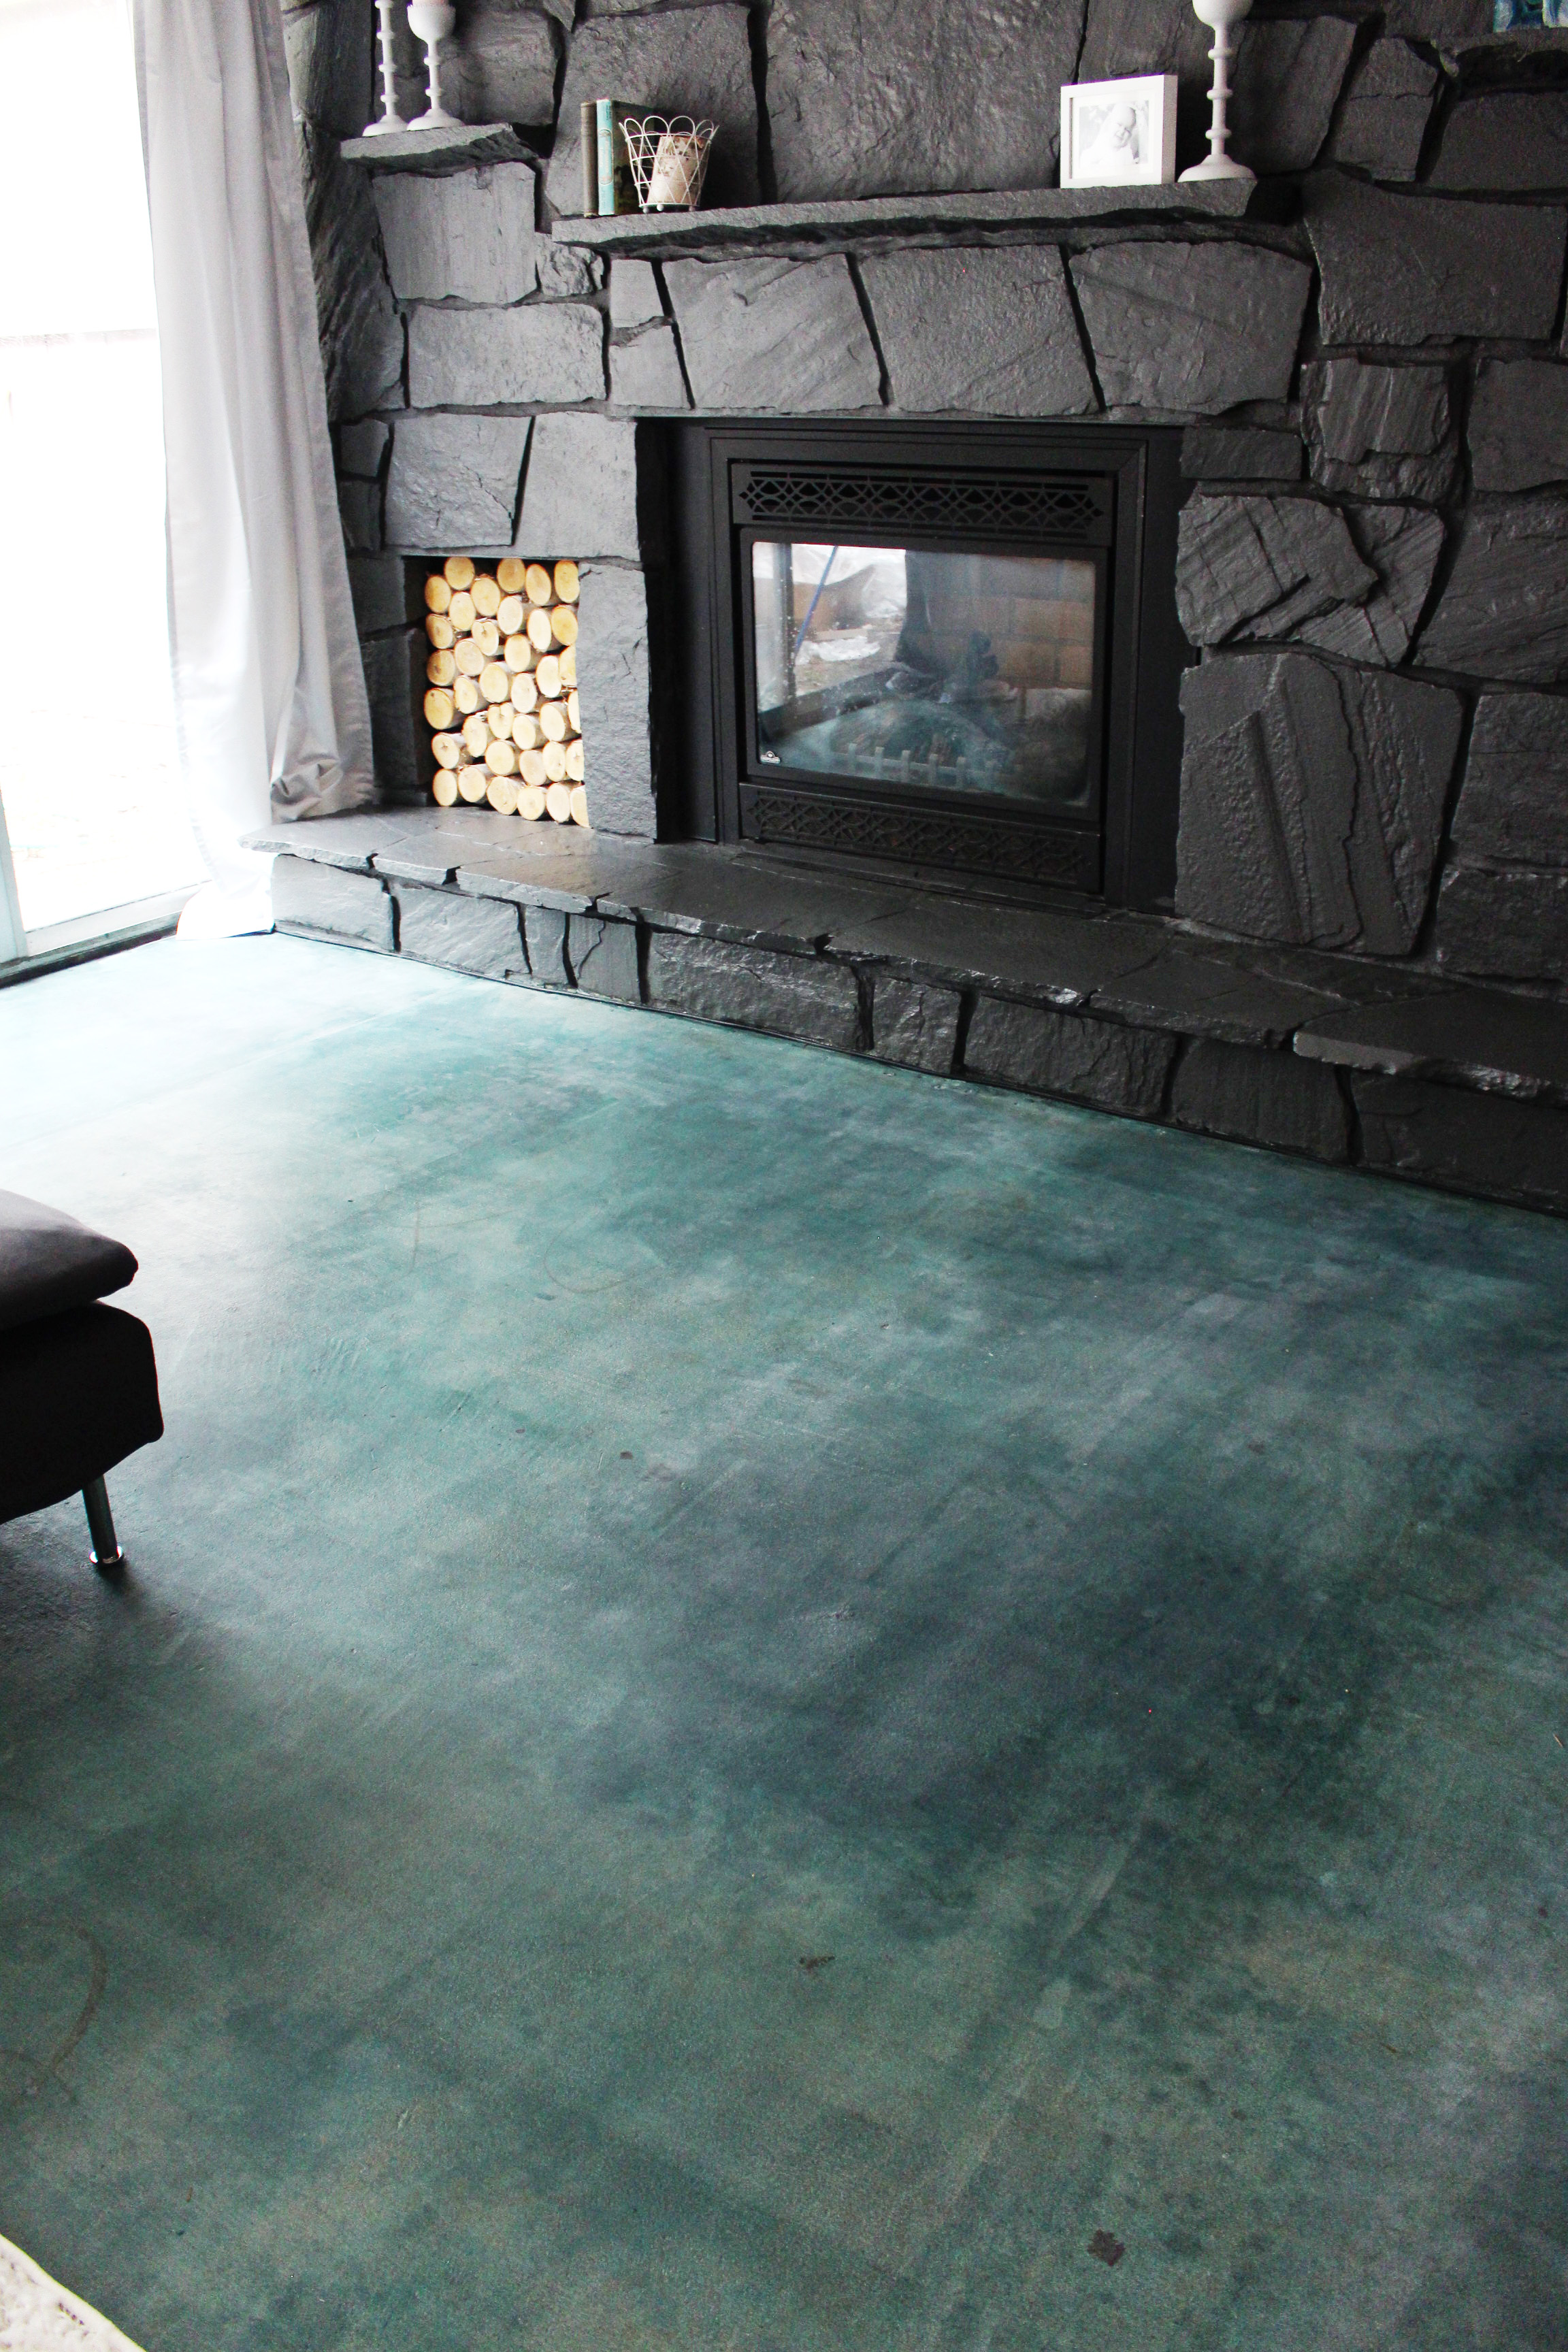 How to Acid Stain a Concrete Floor | Hunker